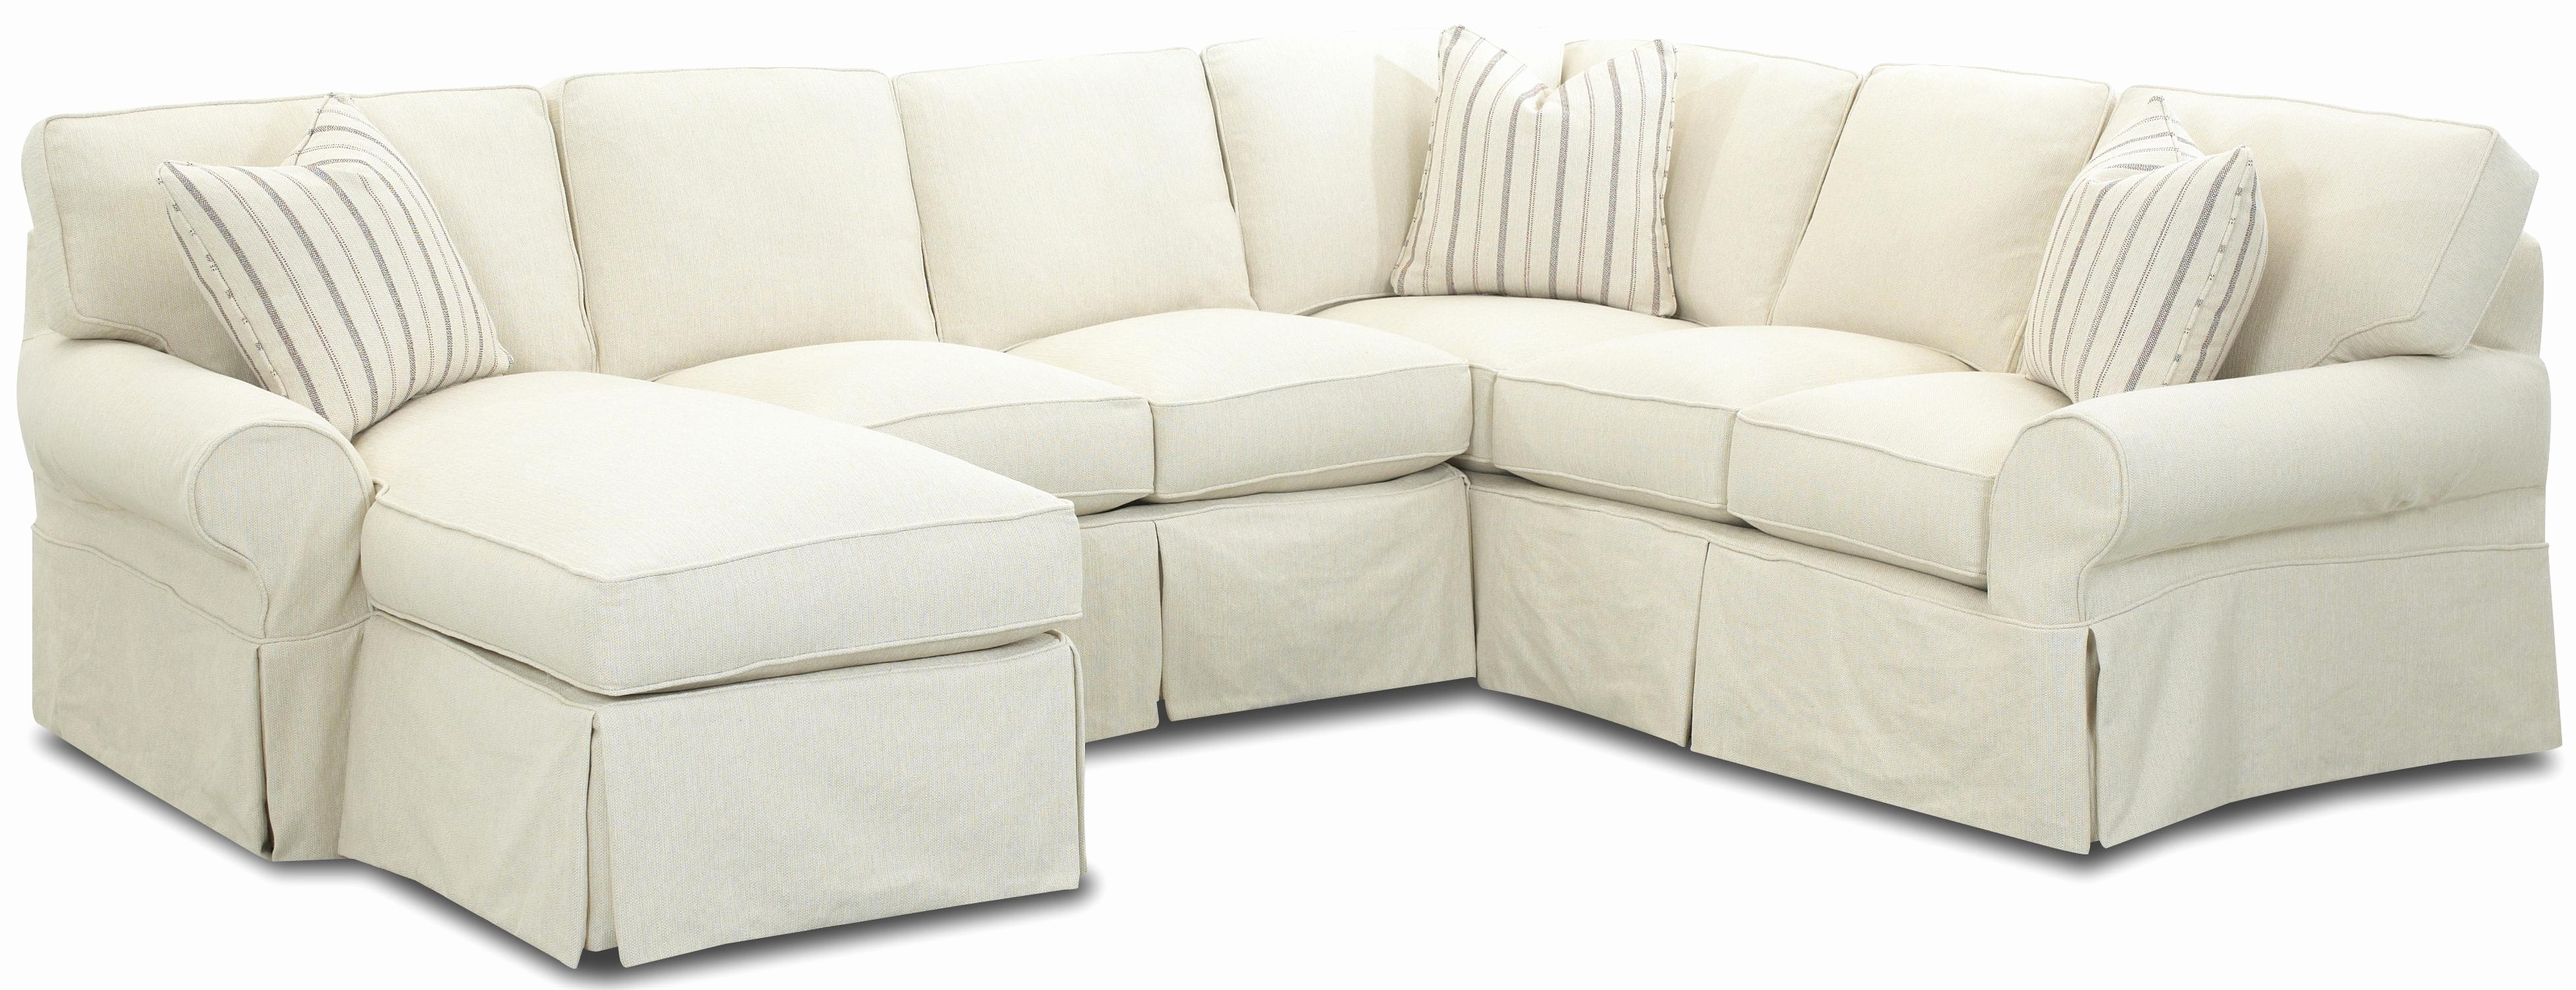 Overstock Sectional Sofas Inside Latest Unique 7 Piece Leather Sectional Sofa 2018 – Couches And Sofas Ideas (View 12 of 15)